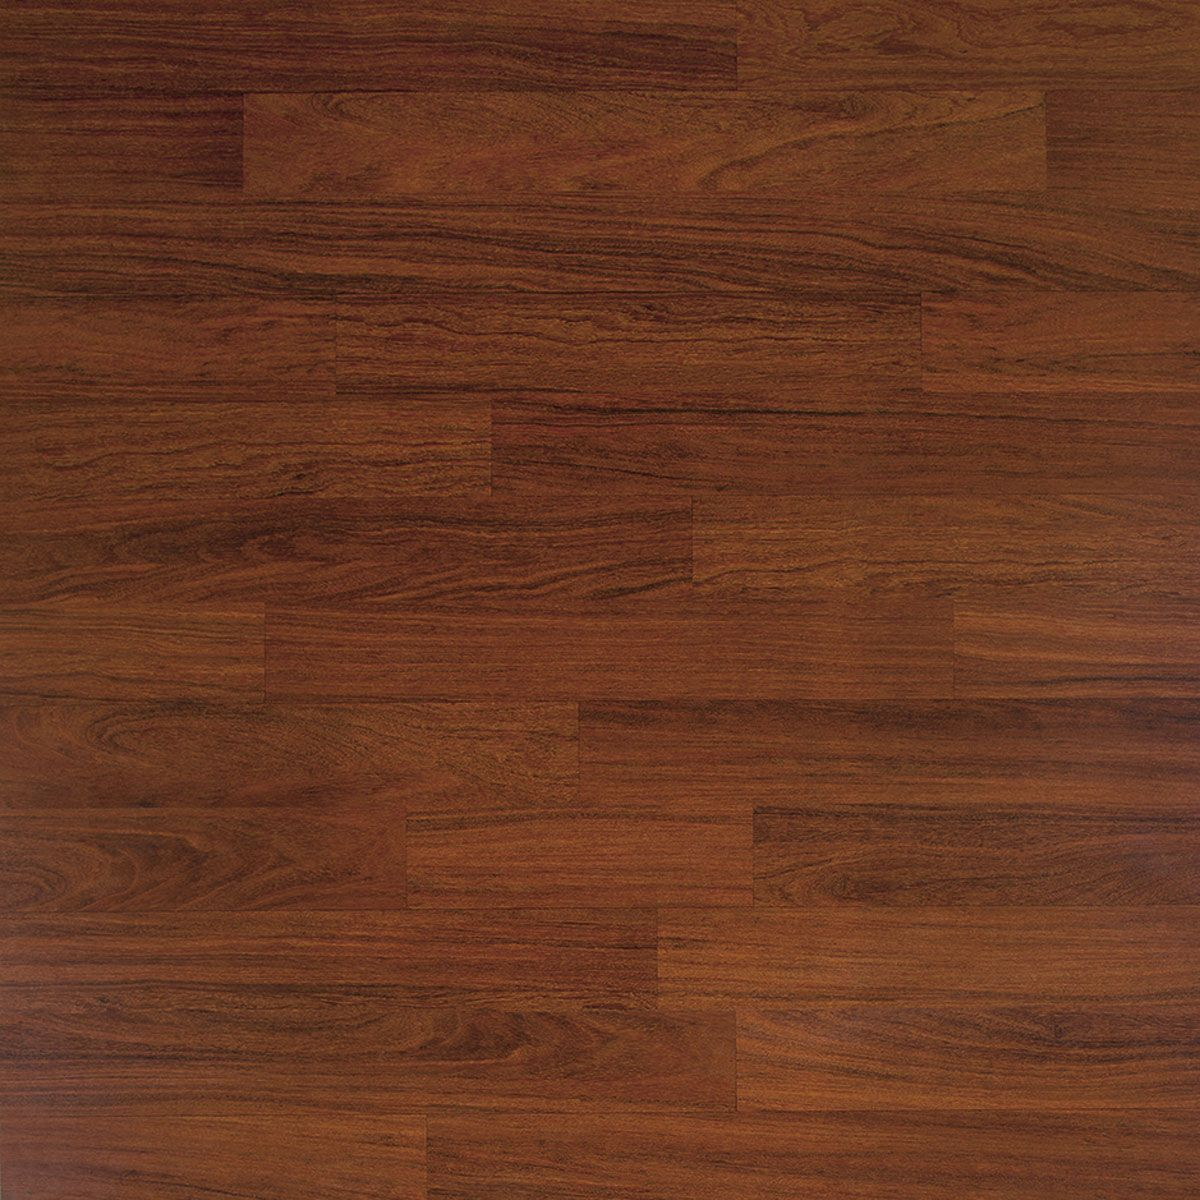 Auburn Floors Instantly Provide A Warm Foundation Dark